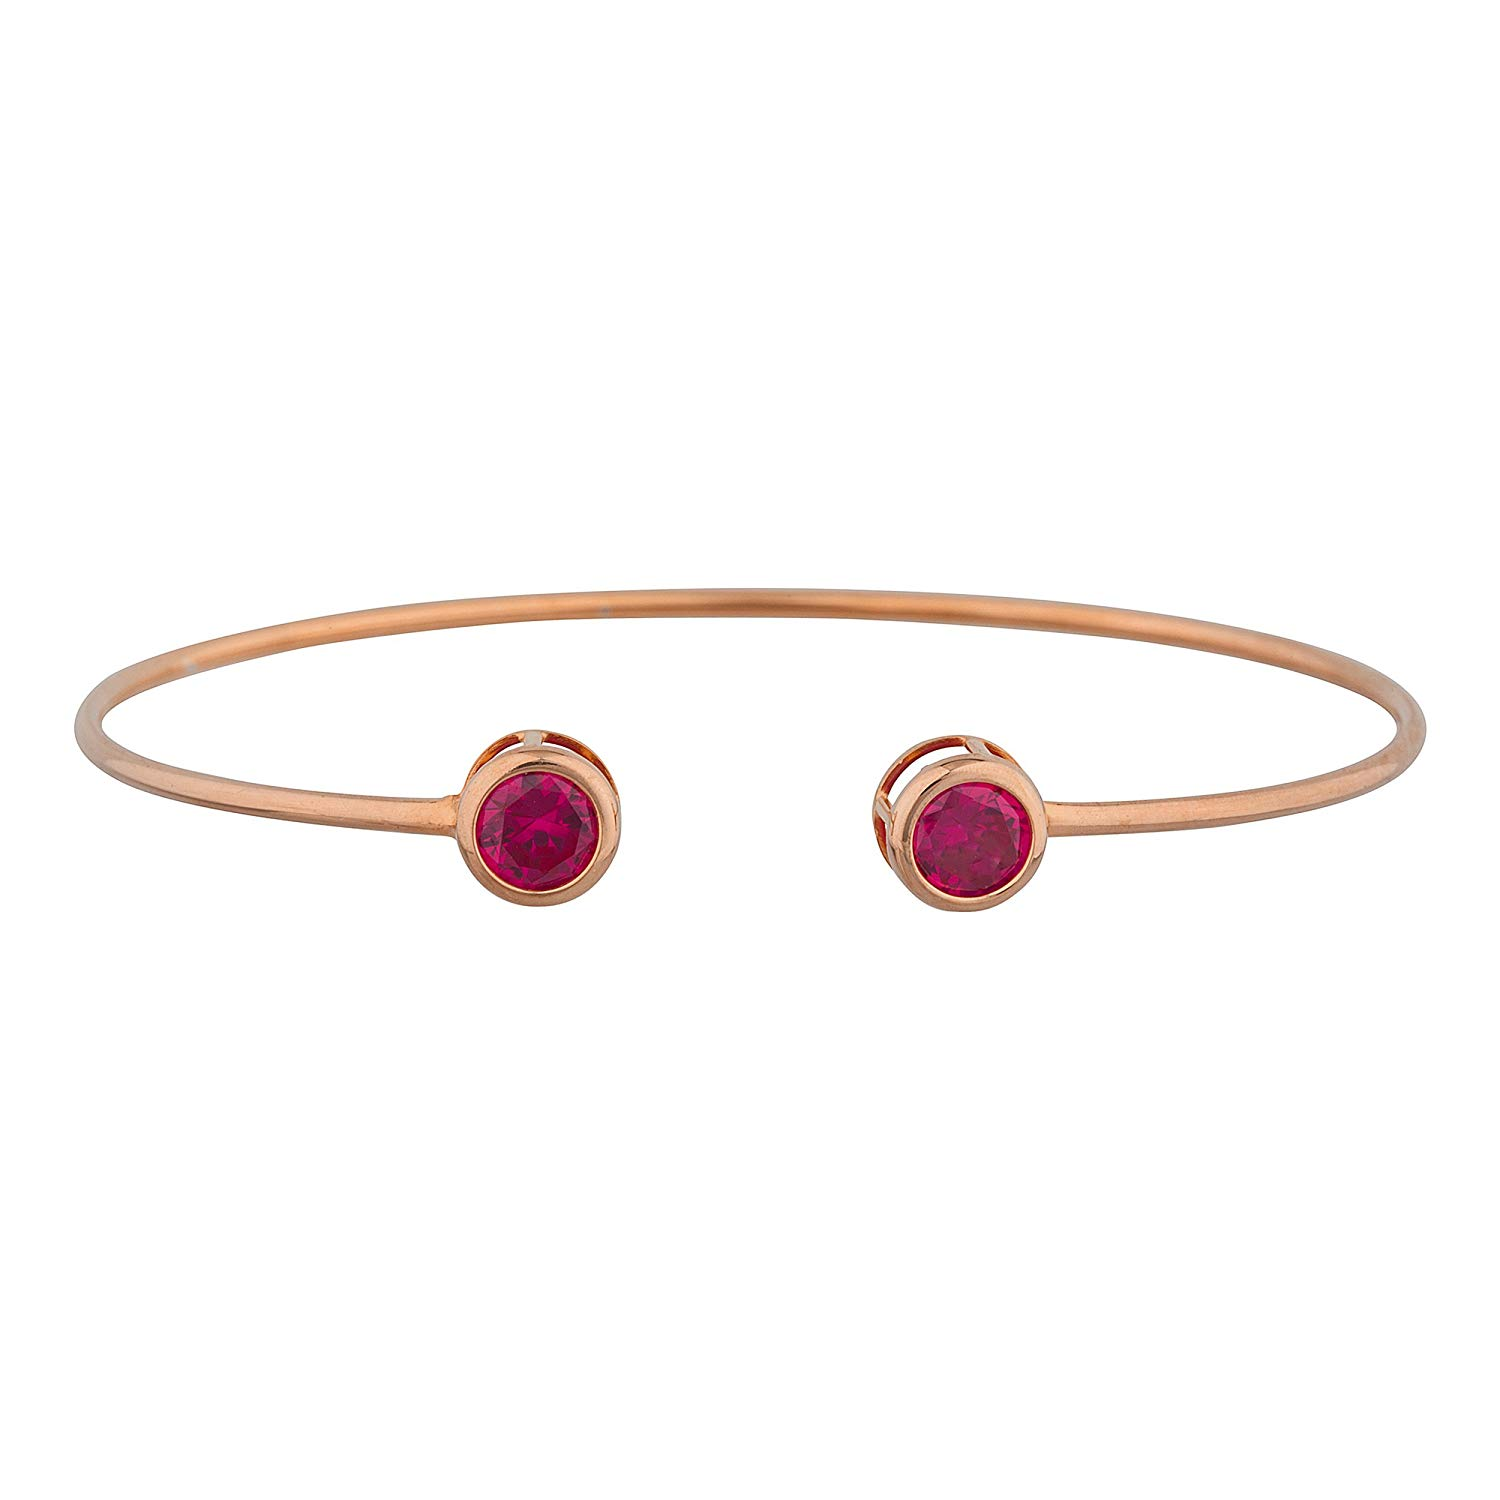 2 Ct Created Ruby Round Bezel Bangle Bracelet 14Kt Rose Gold Plated Over .925 Sterling Silver